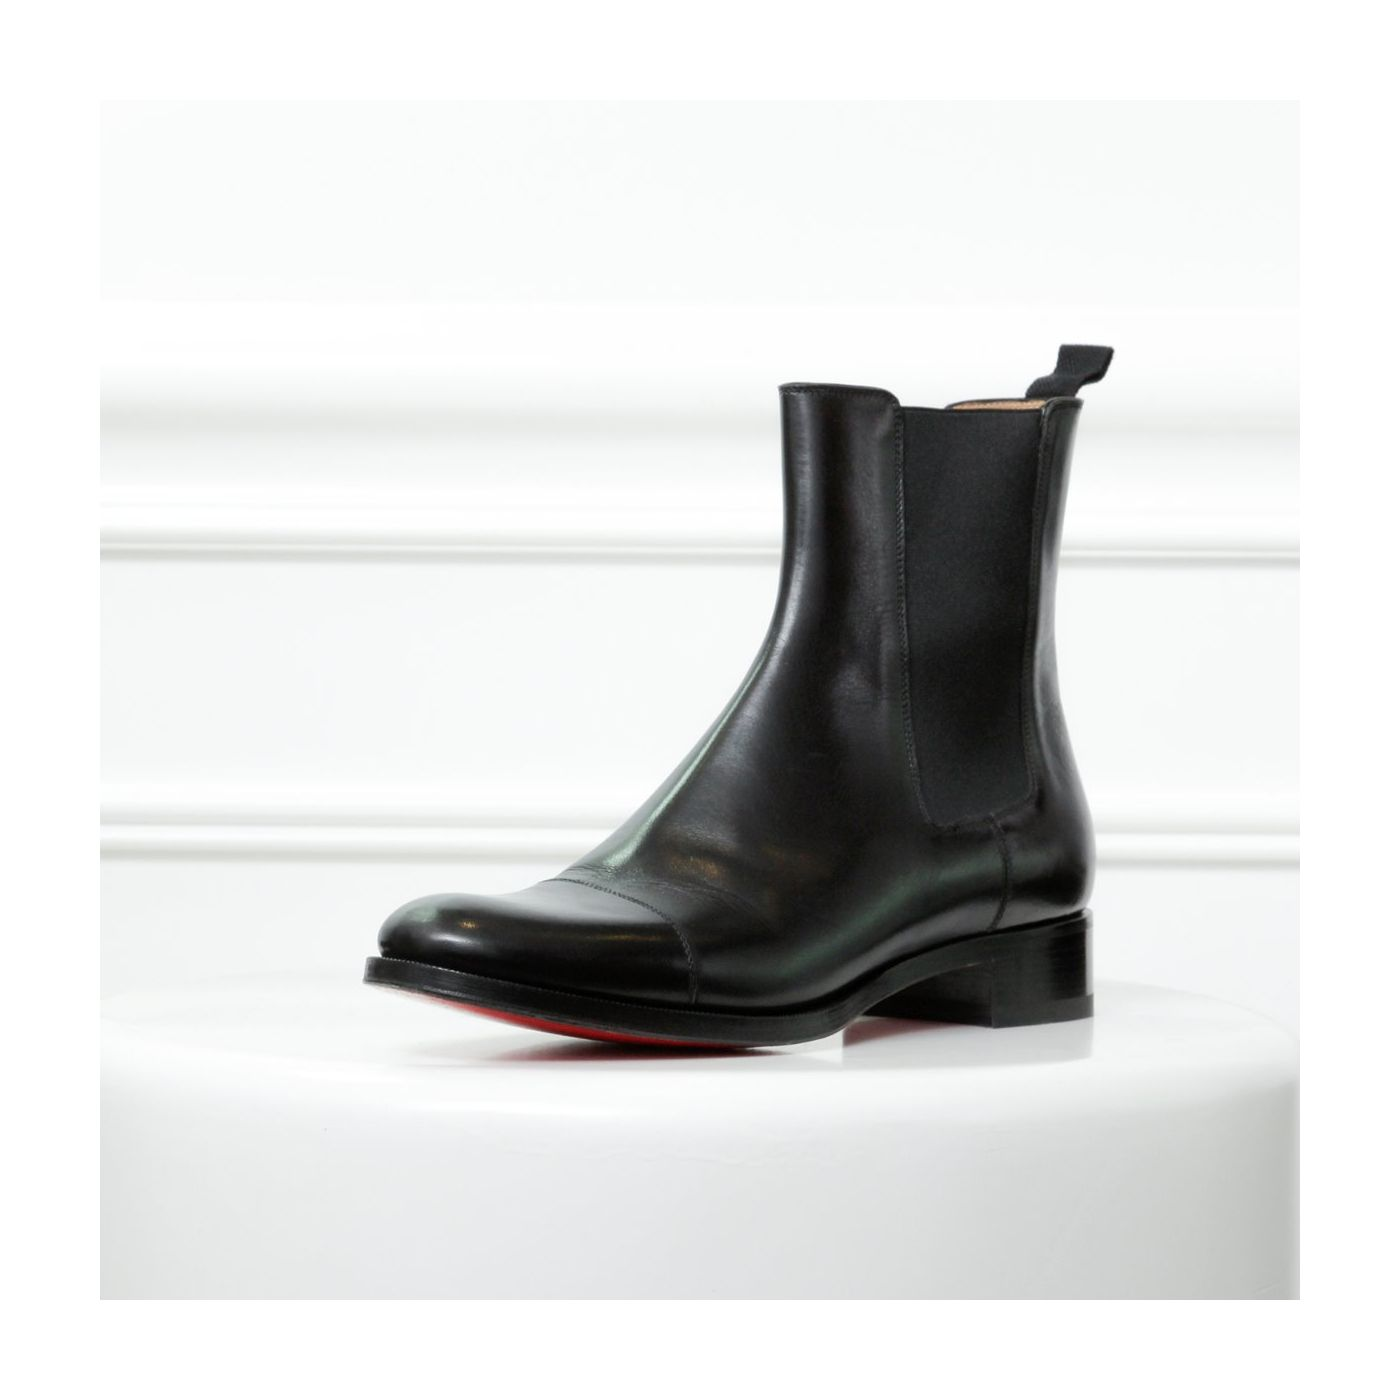 Christian Louboutin Black Ankle Boots 42 1/2